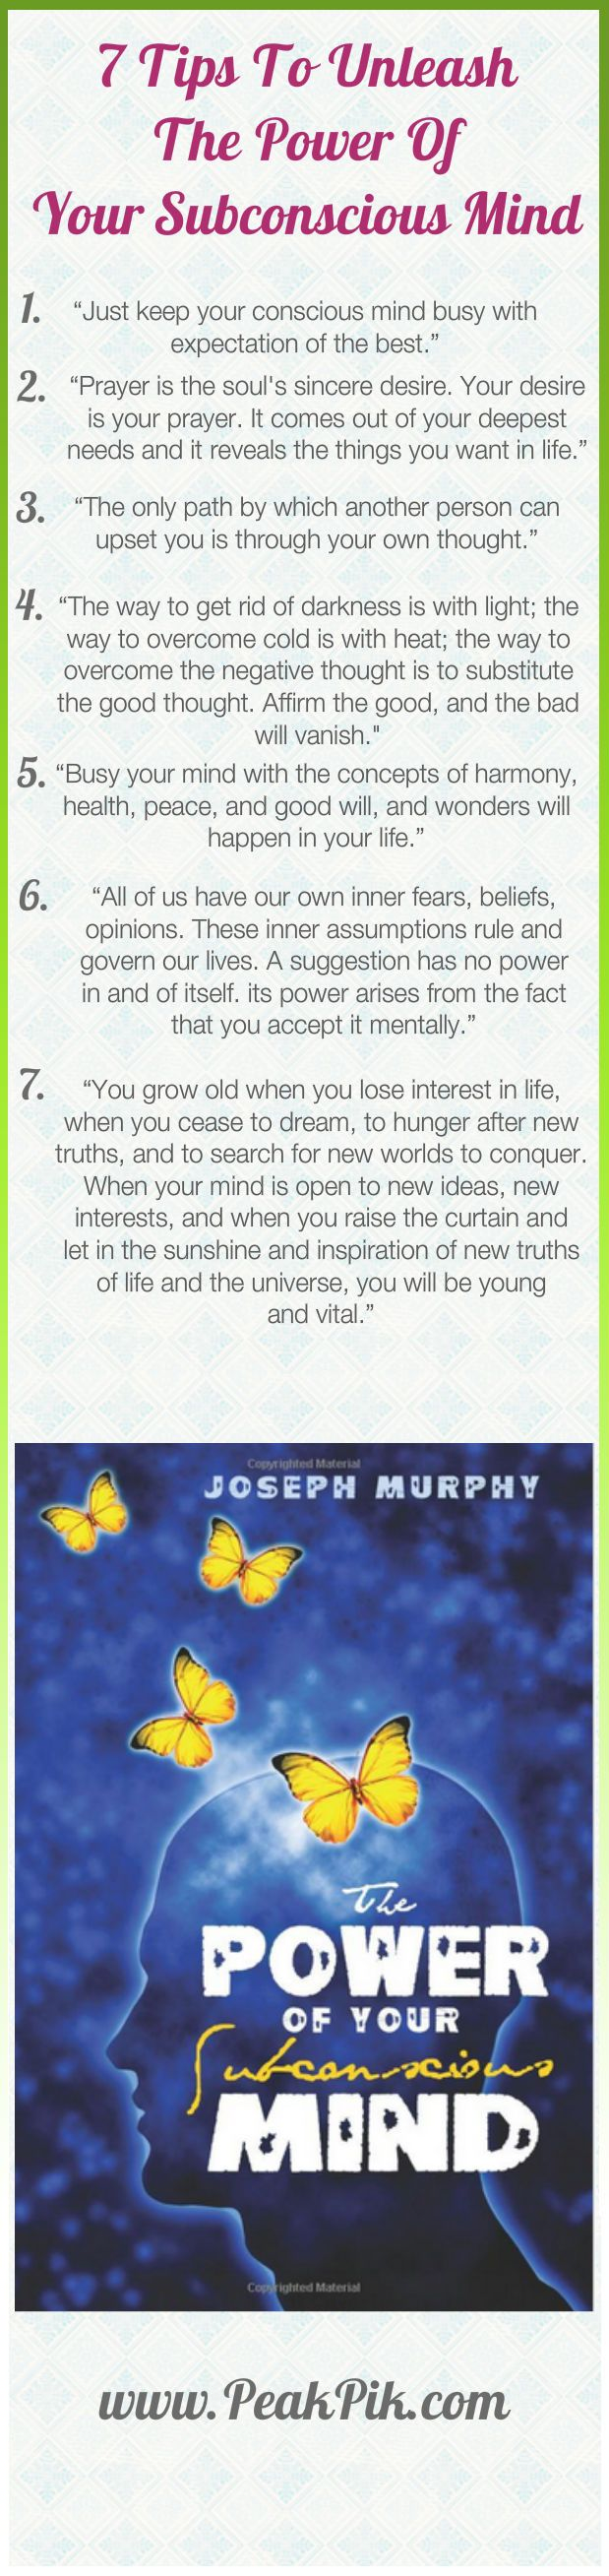 In The Power of Your Subconscious Mind, Dr. Joseph Murphy gives you the tools you will need to unlock the awesome powers of your subconscious mind. You can improve your relationships, your finances, your physical well-being. Once you learn how